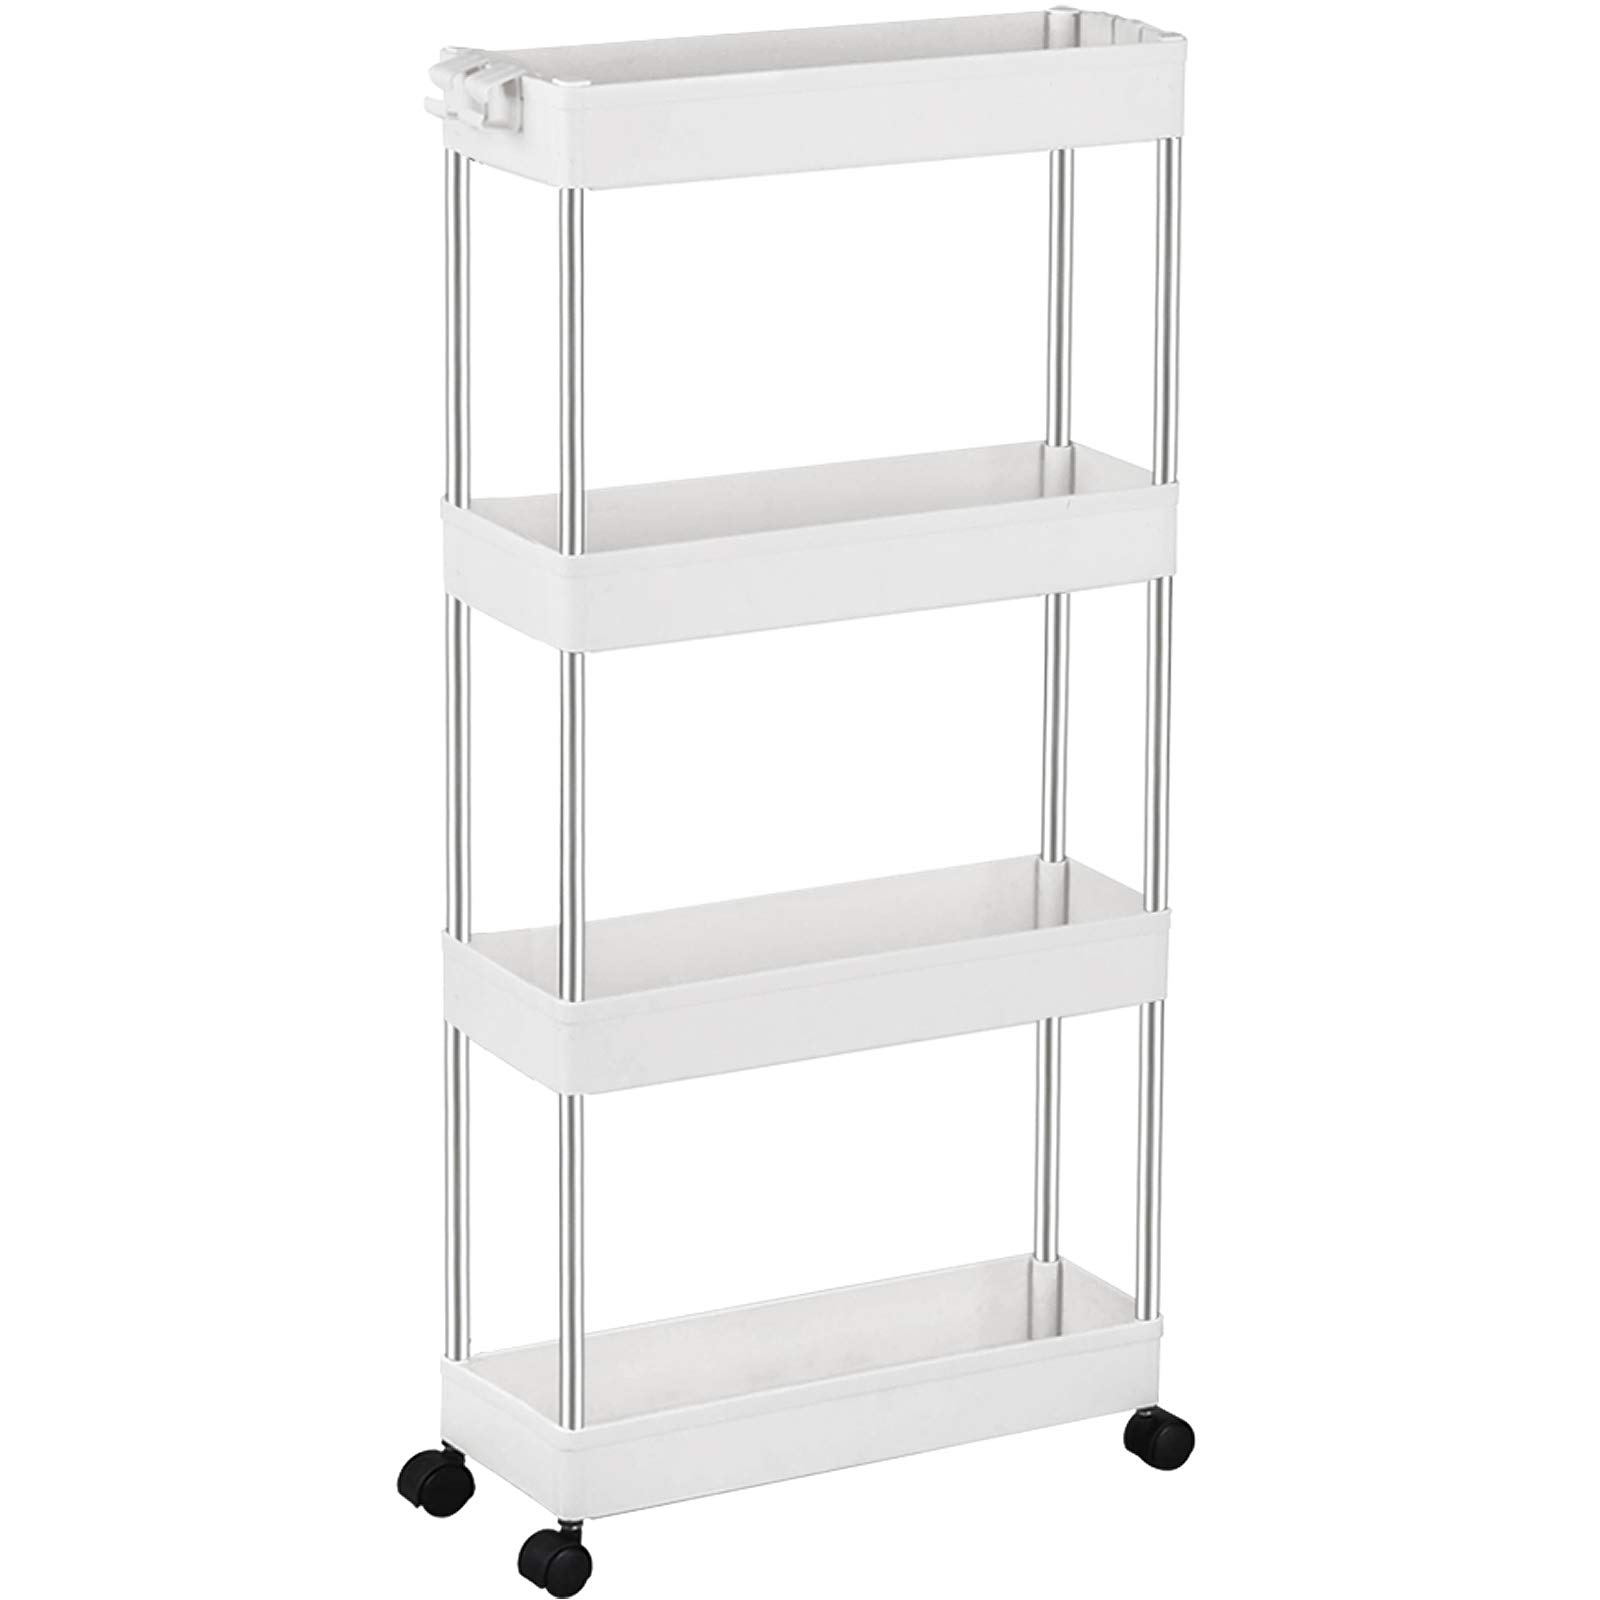 Spacekeeper Storage Trolley 4 Tier Slim Storage Cart Slide Out Rolling Utility Cart Mobile Shelving Unit Trolley Organizer Cart For Kitchen Bathroom Laundry Office Plastic Stainless Steel White Buy Online In Bahamas